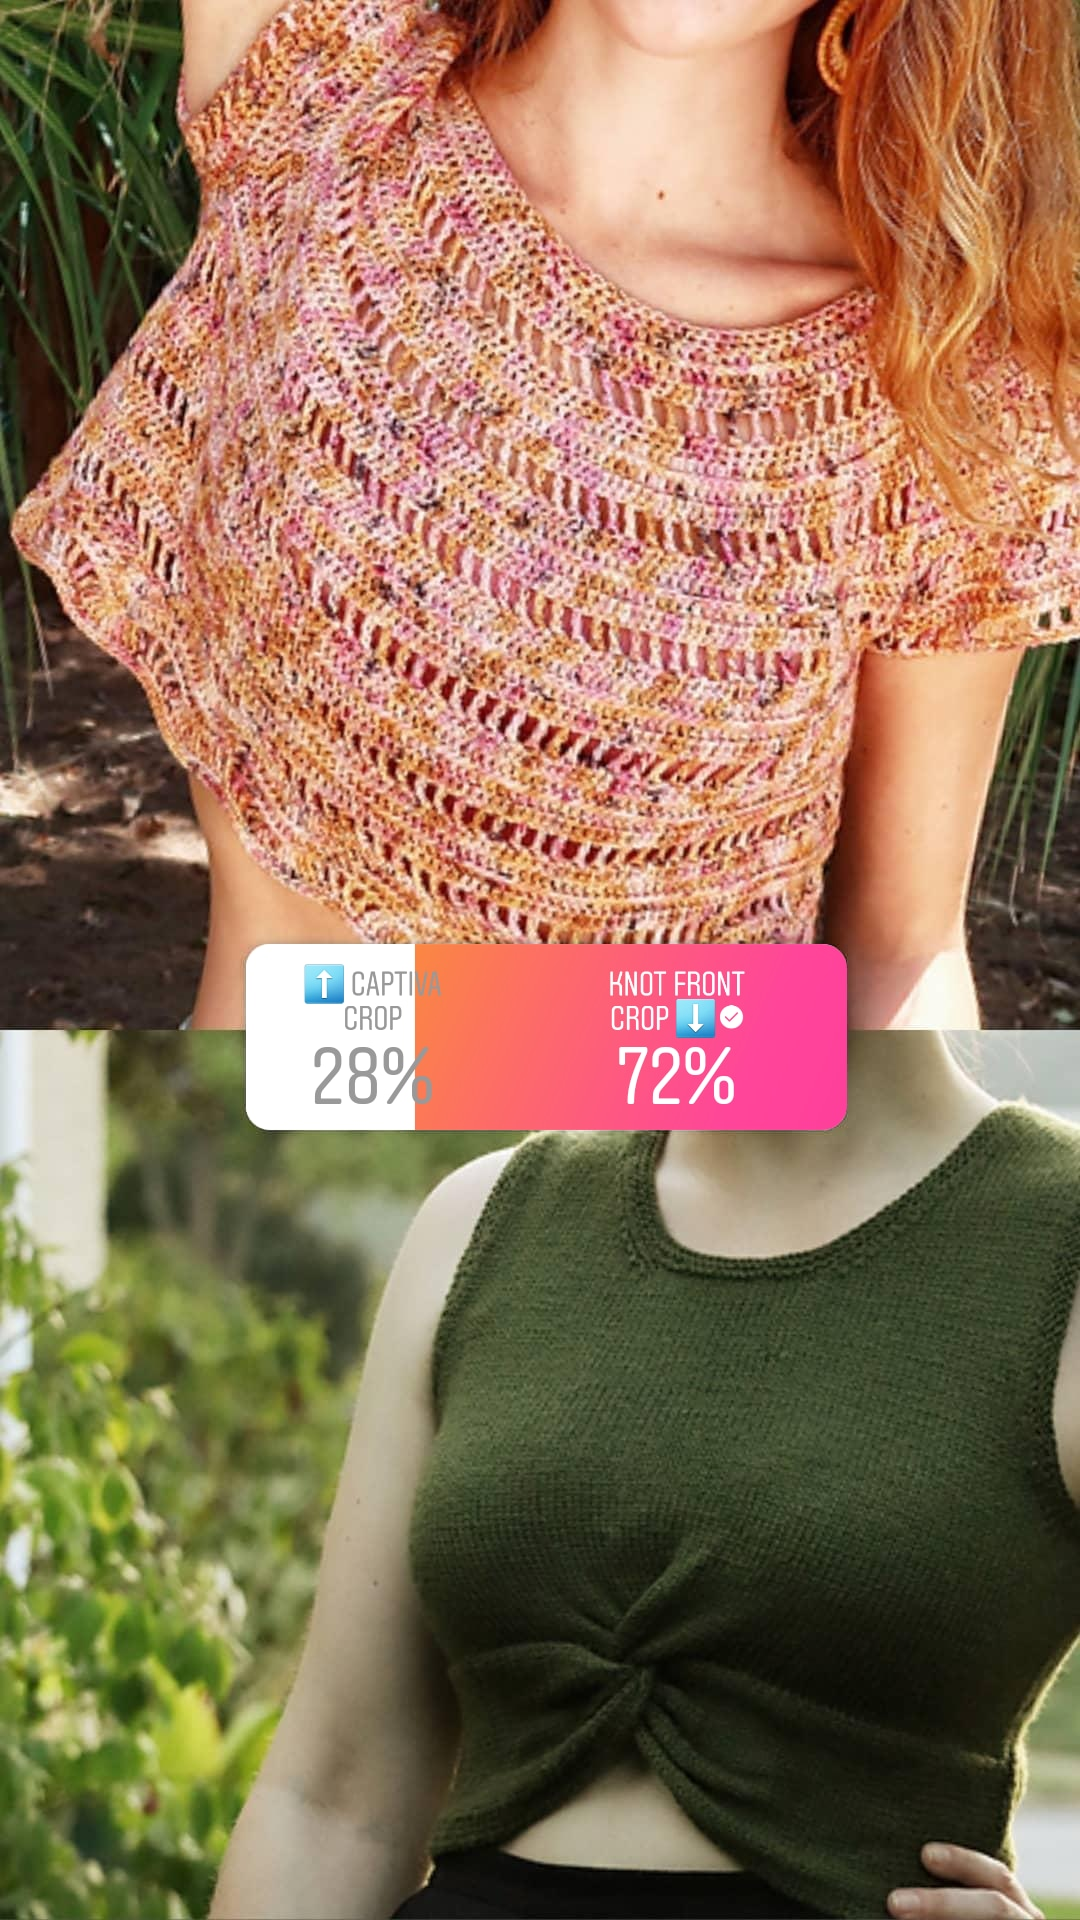 Story graphic showing a poll between two designs: 28% for Captiva and 72% for Knot Front